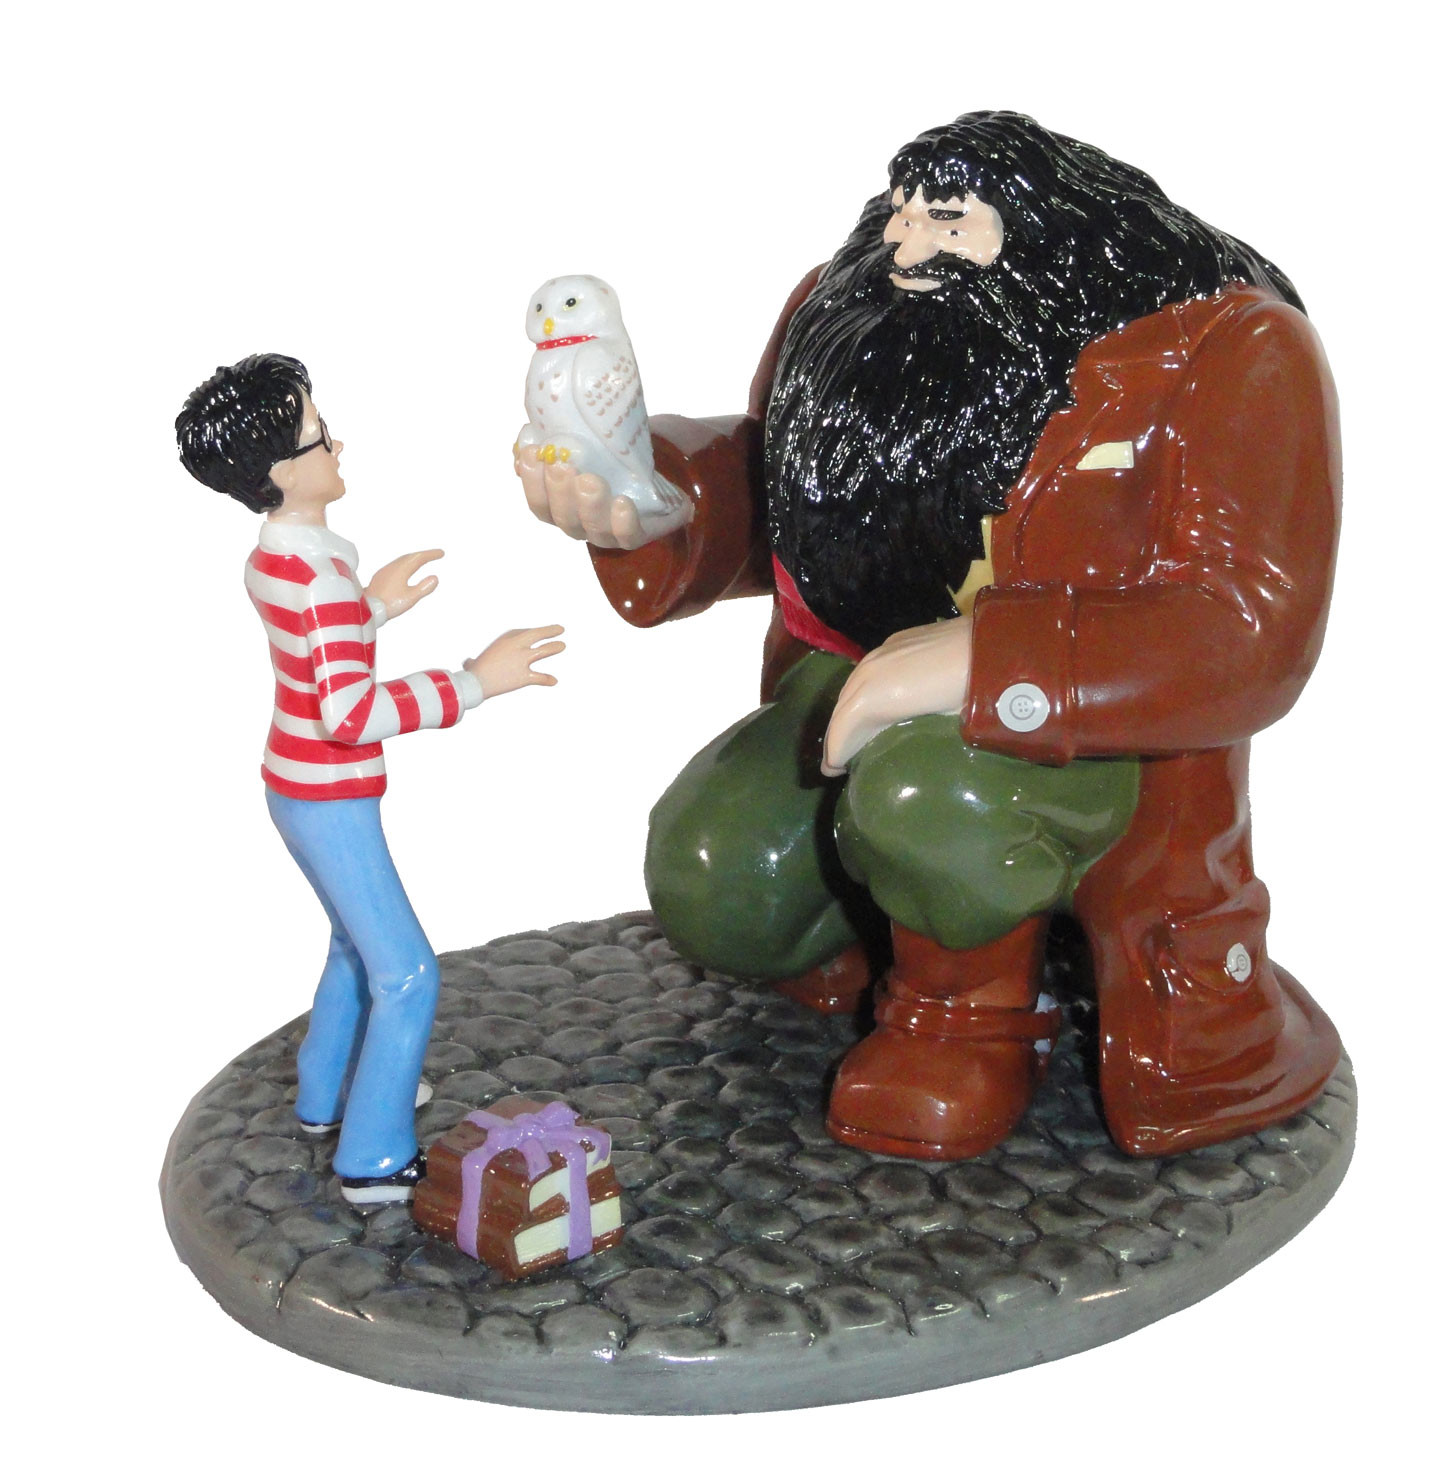 Harry's 11th - Hagrid's and Harry's head both virtually sculpted. Body's and base were sculpted in wax - Finished piece porcelain